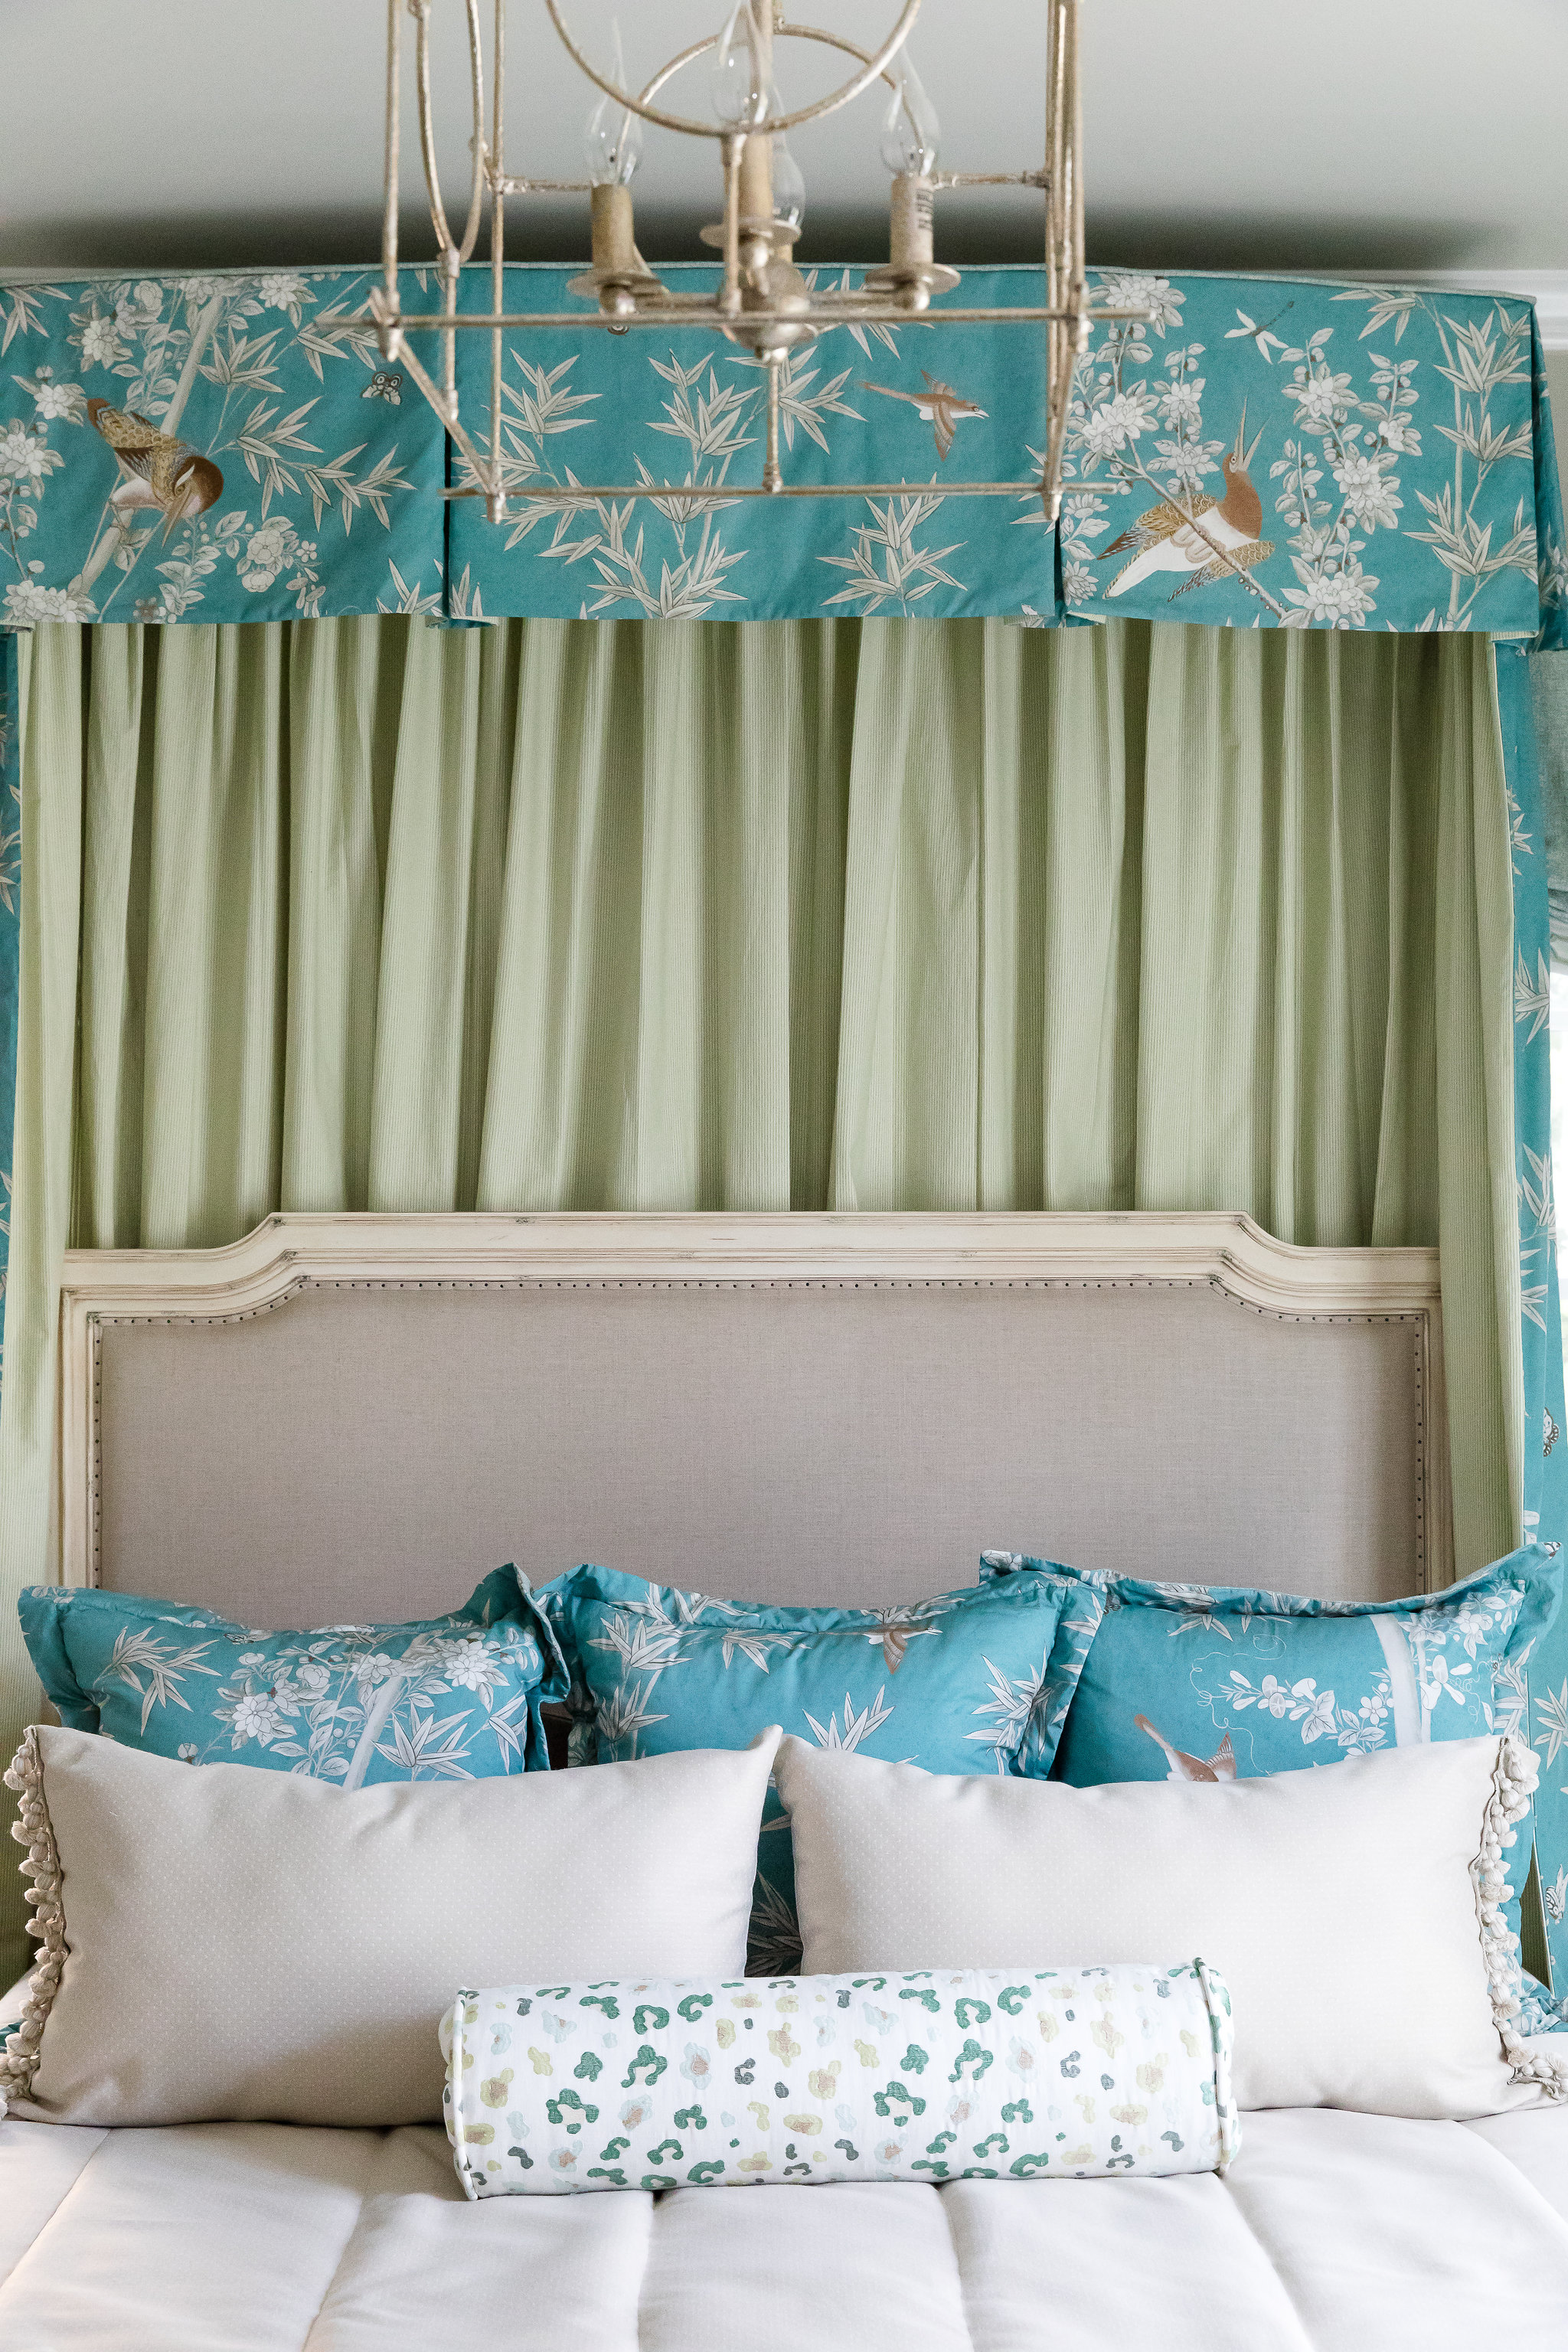 Canopy Bed with Chintz panels and Euro Pillows by Miles Redd, for interior design in Nashville, TN, call the interior designers at Eric Ross Interiors.